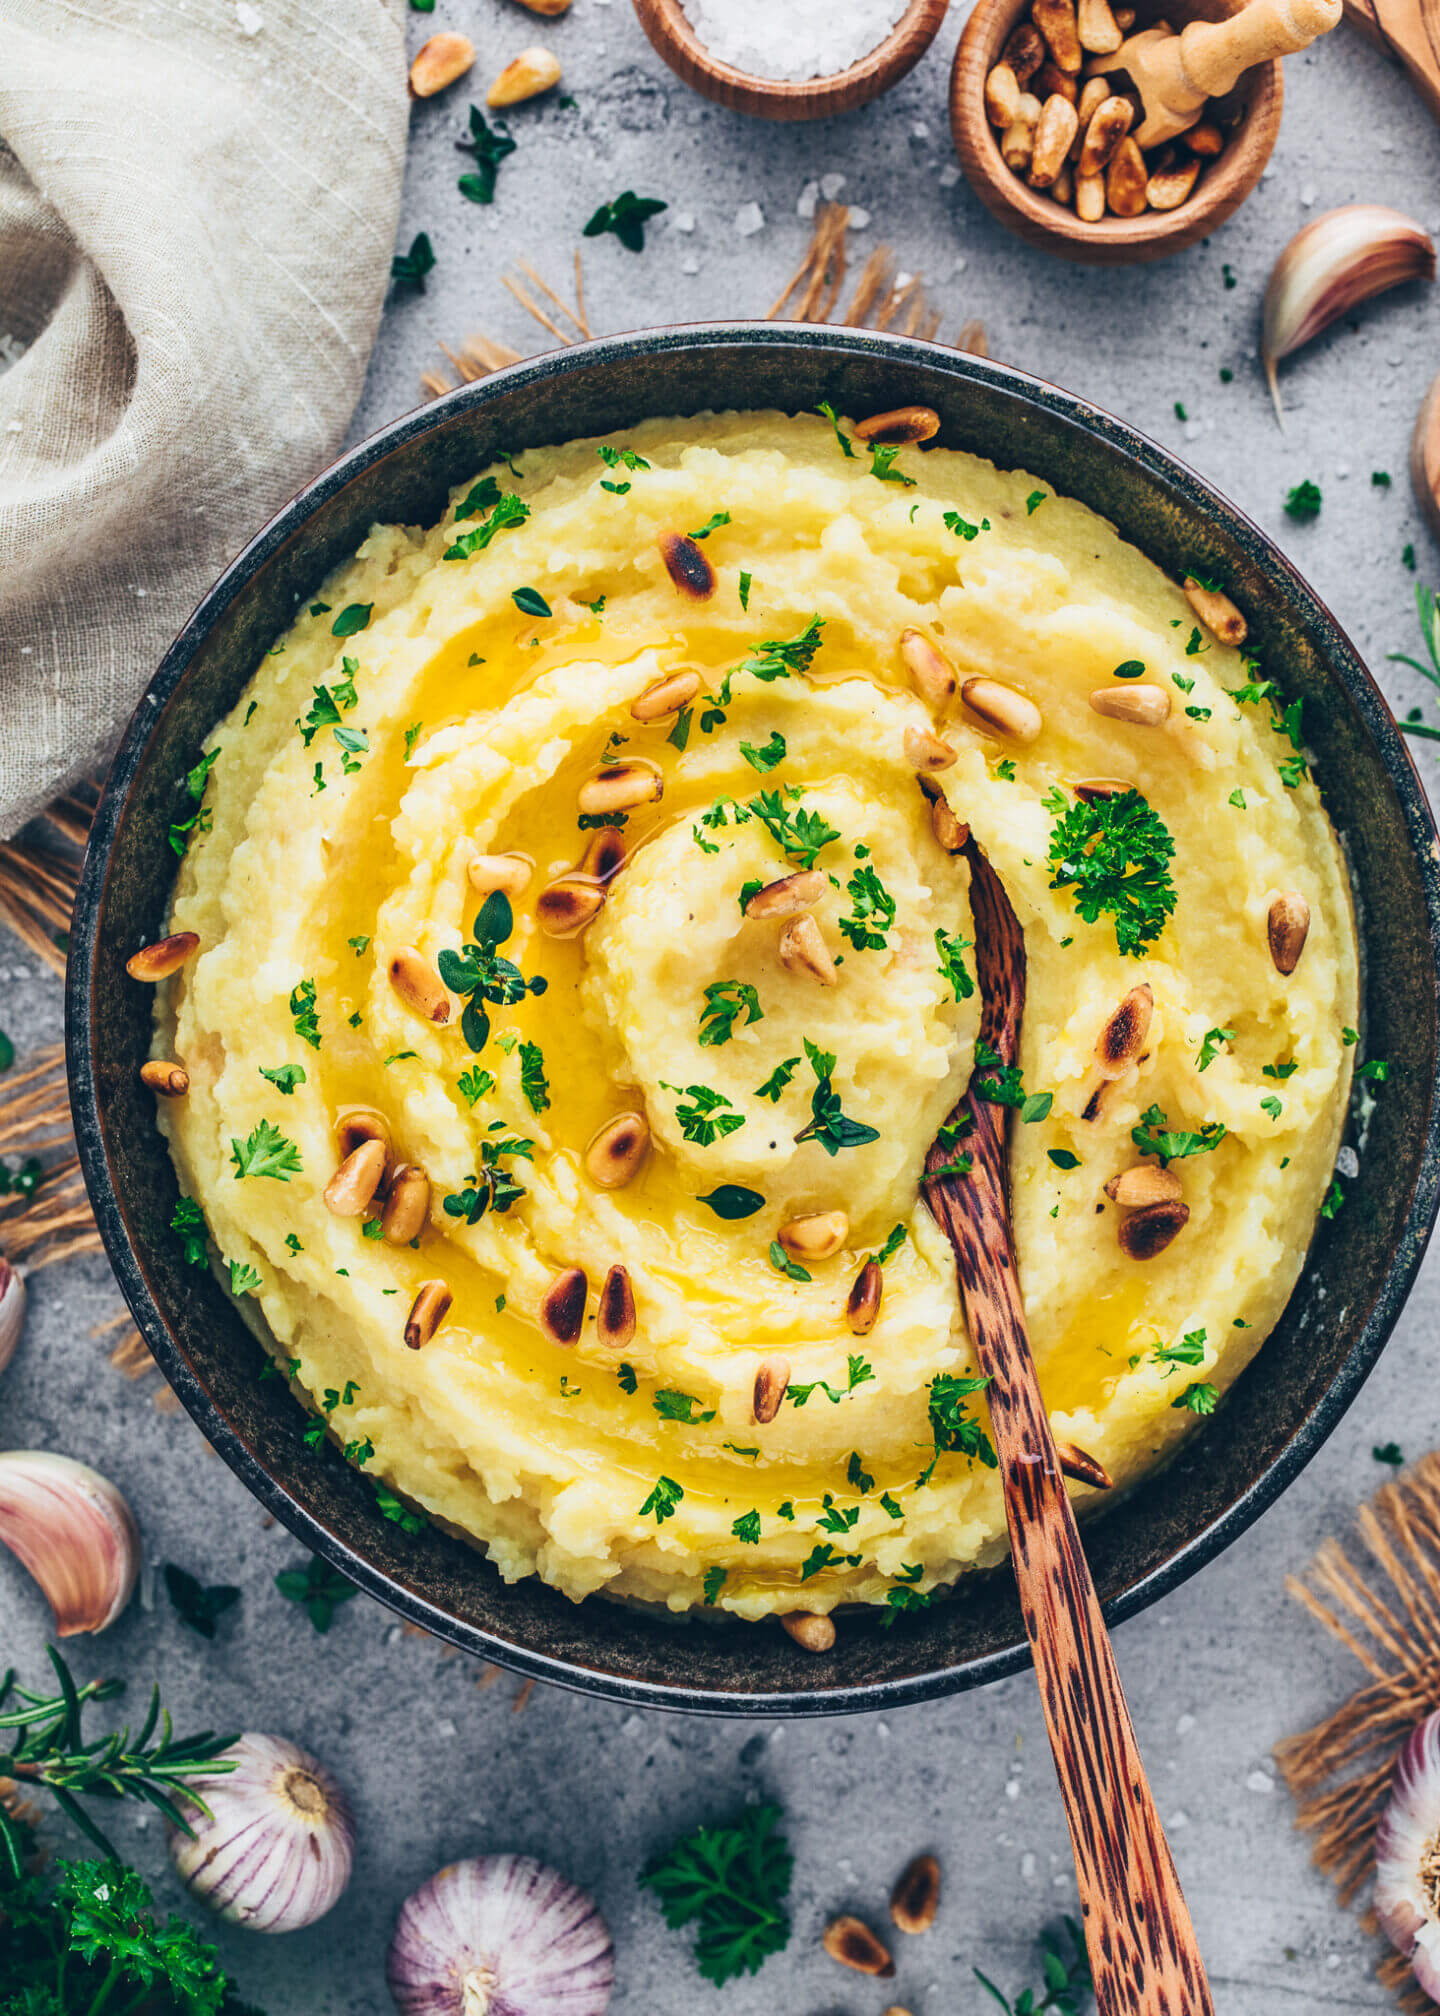 Best Mashed Potatoes with roasted garlic, parsley, thyme, olive oil, and pine nuts